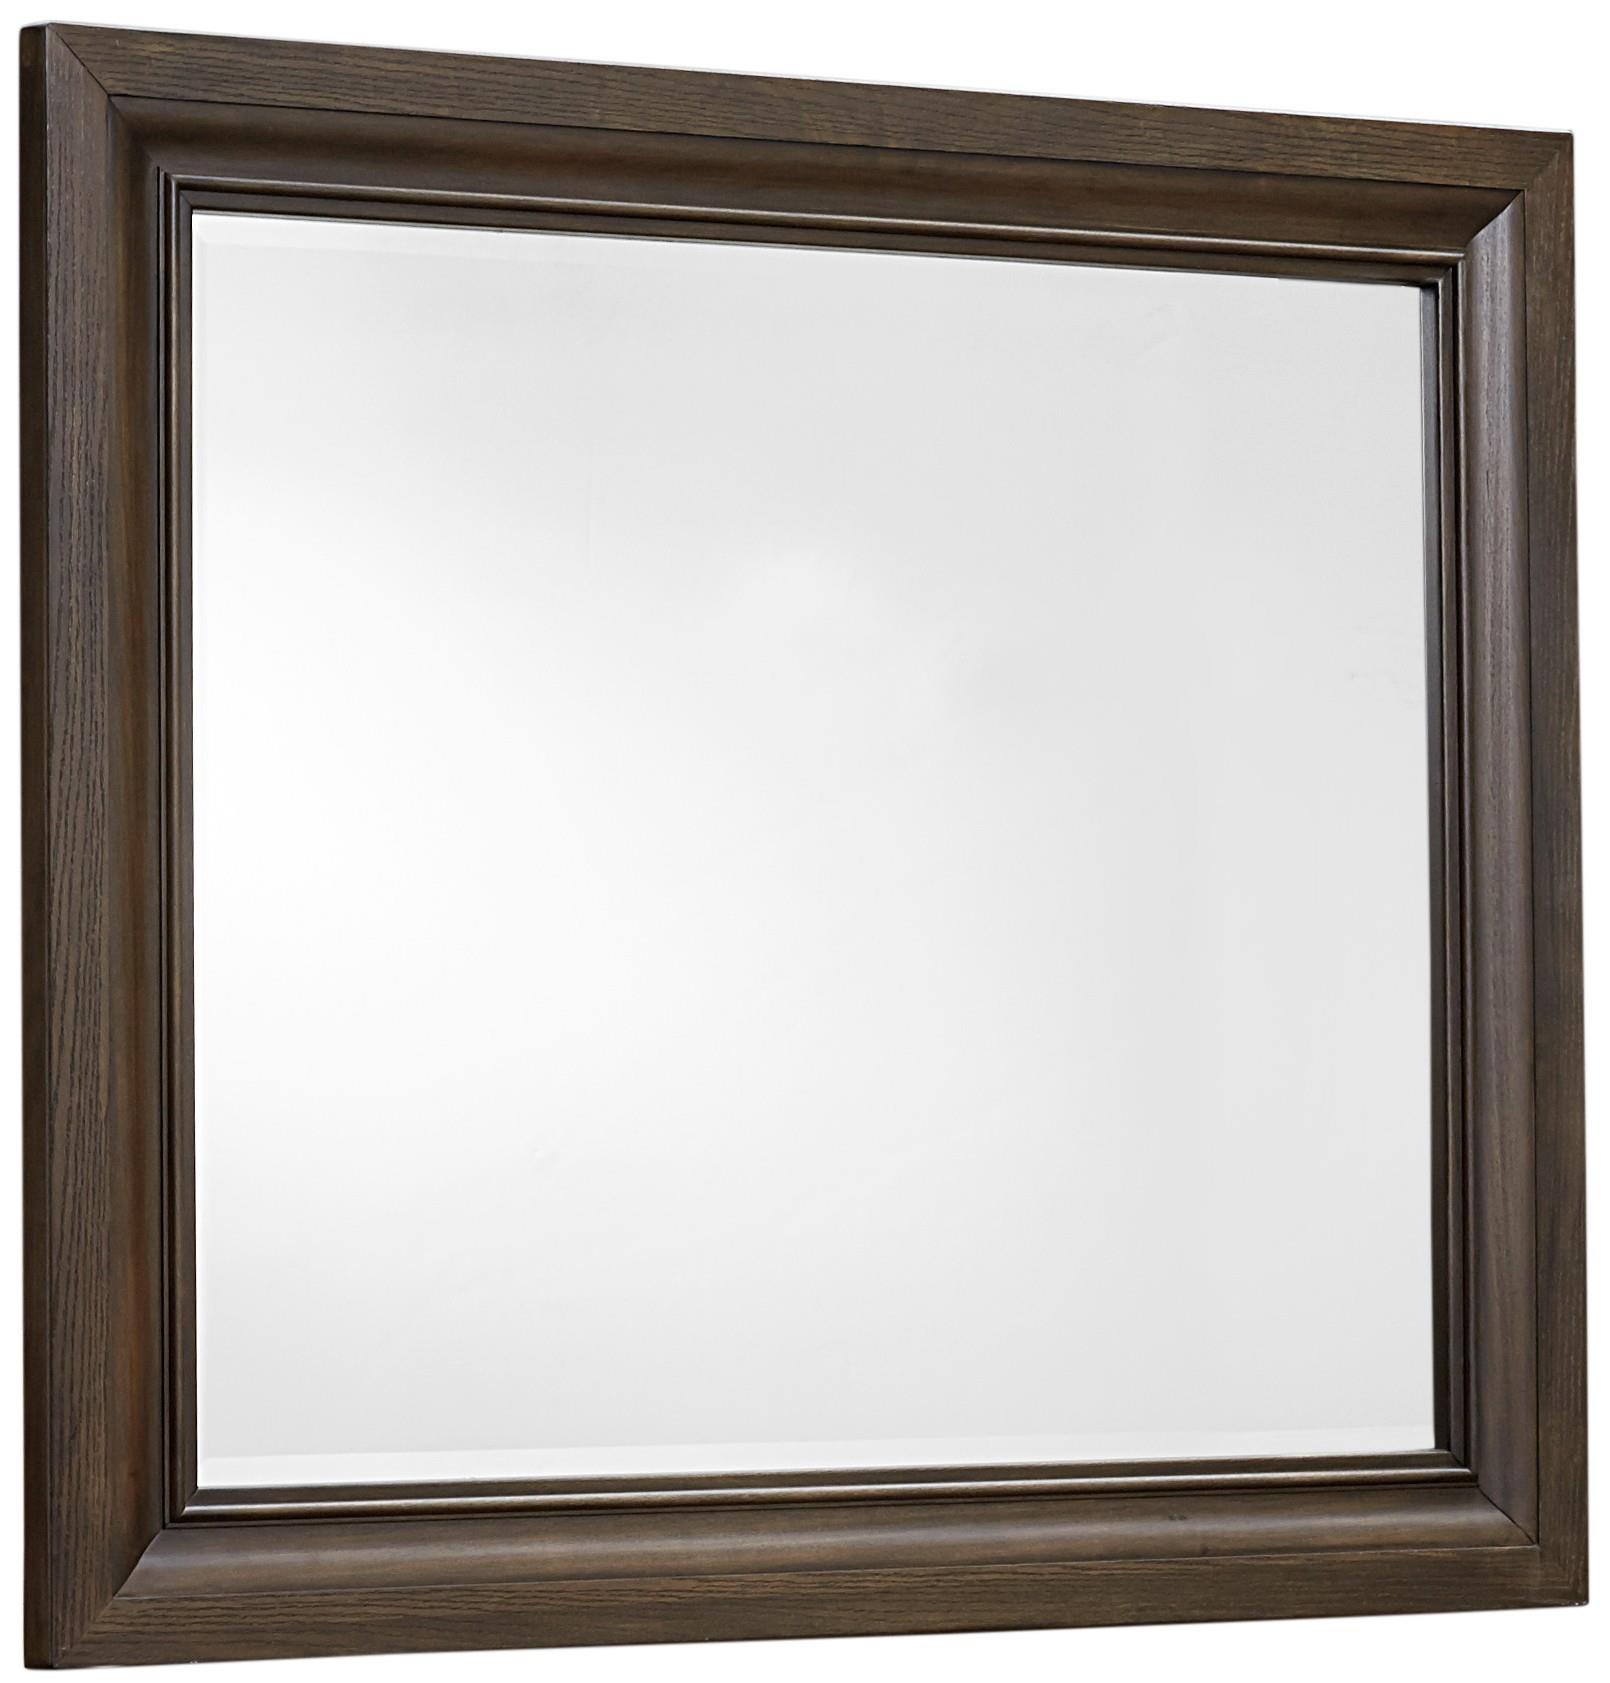 Vaughan Bassett Affinity Landscape Mirror - Beveled glass - Item Number: 560-446